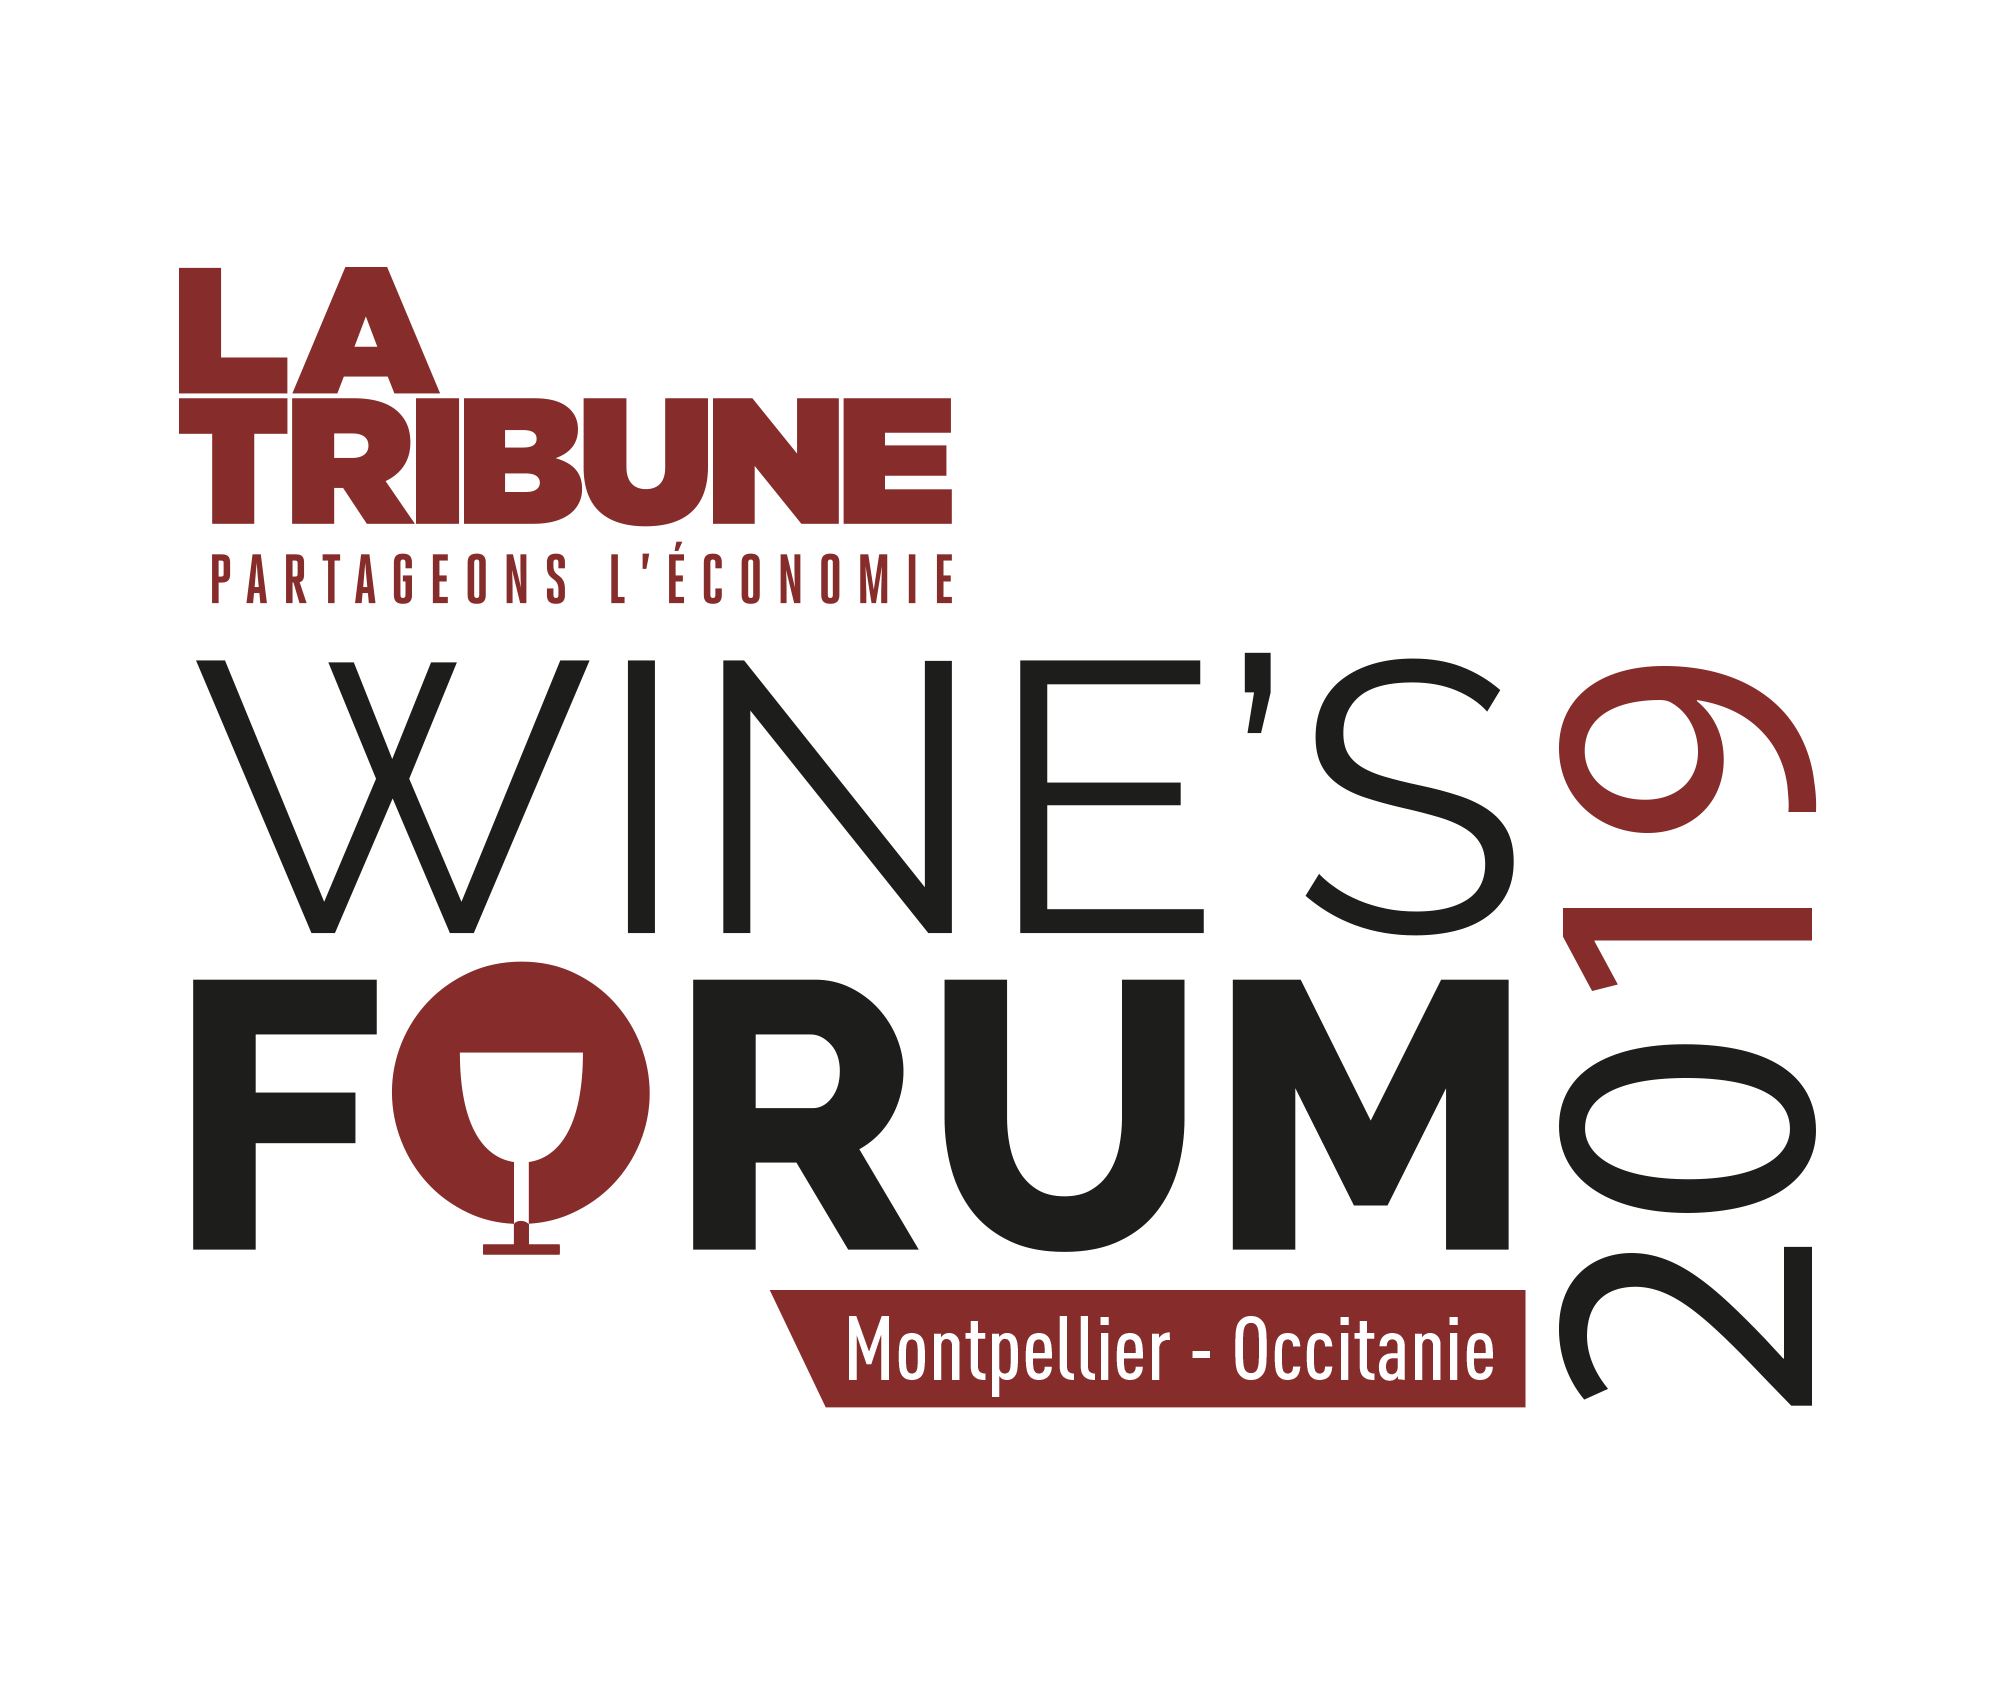 Ltwinesforum2019montpellier15675225131567522513